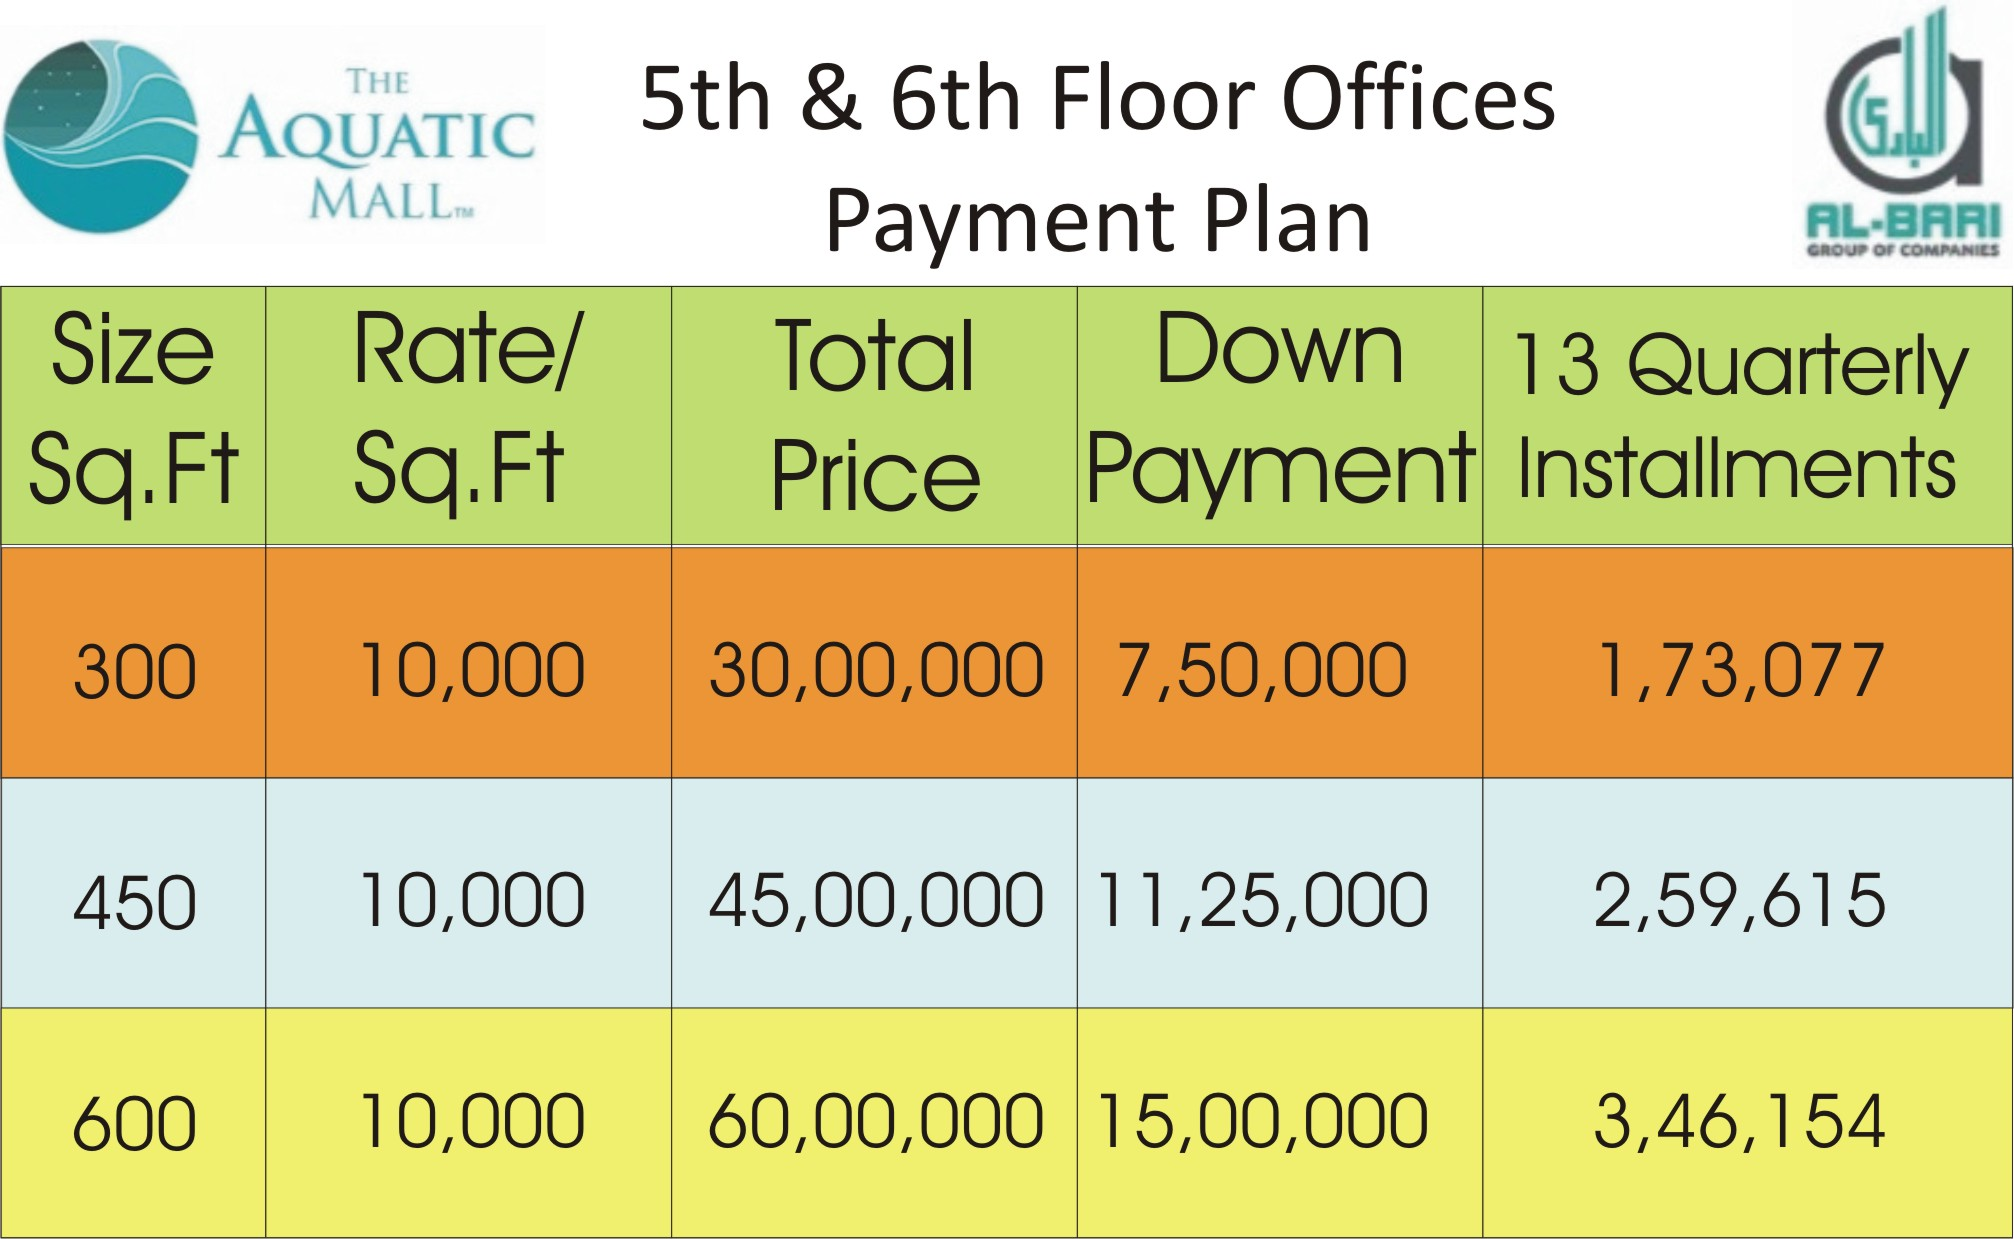 Aquatic Mall 5th & 6th Floor Offices Payment Plan